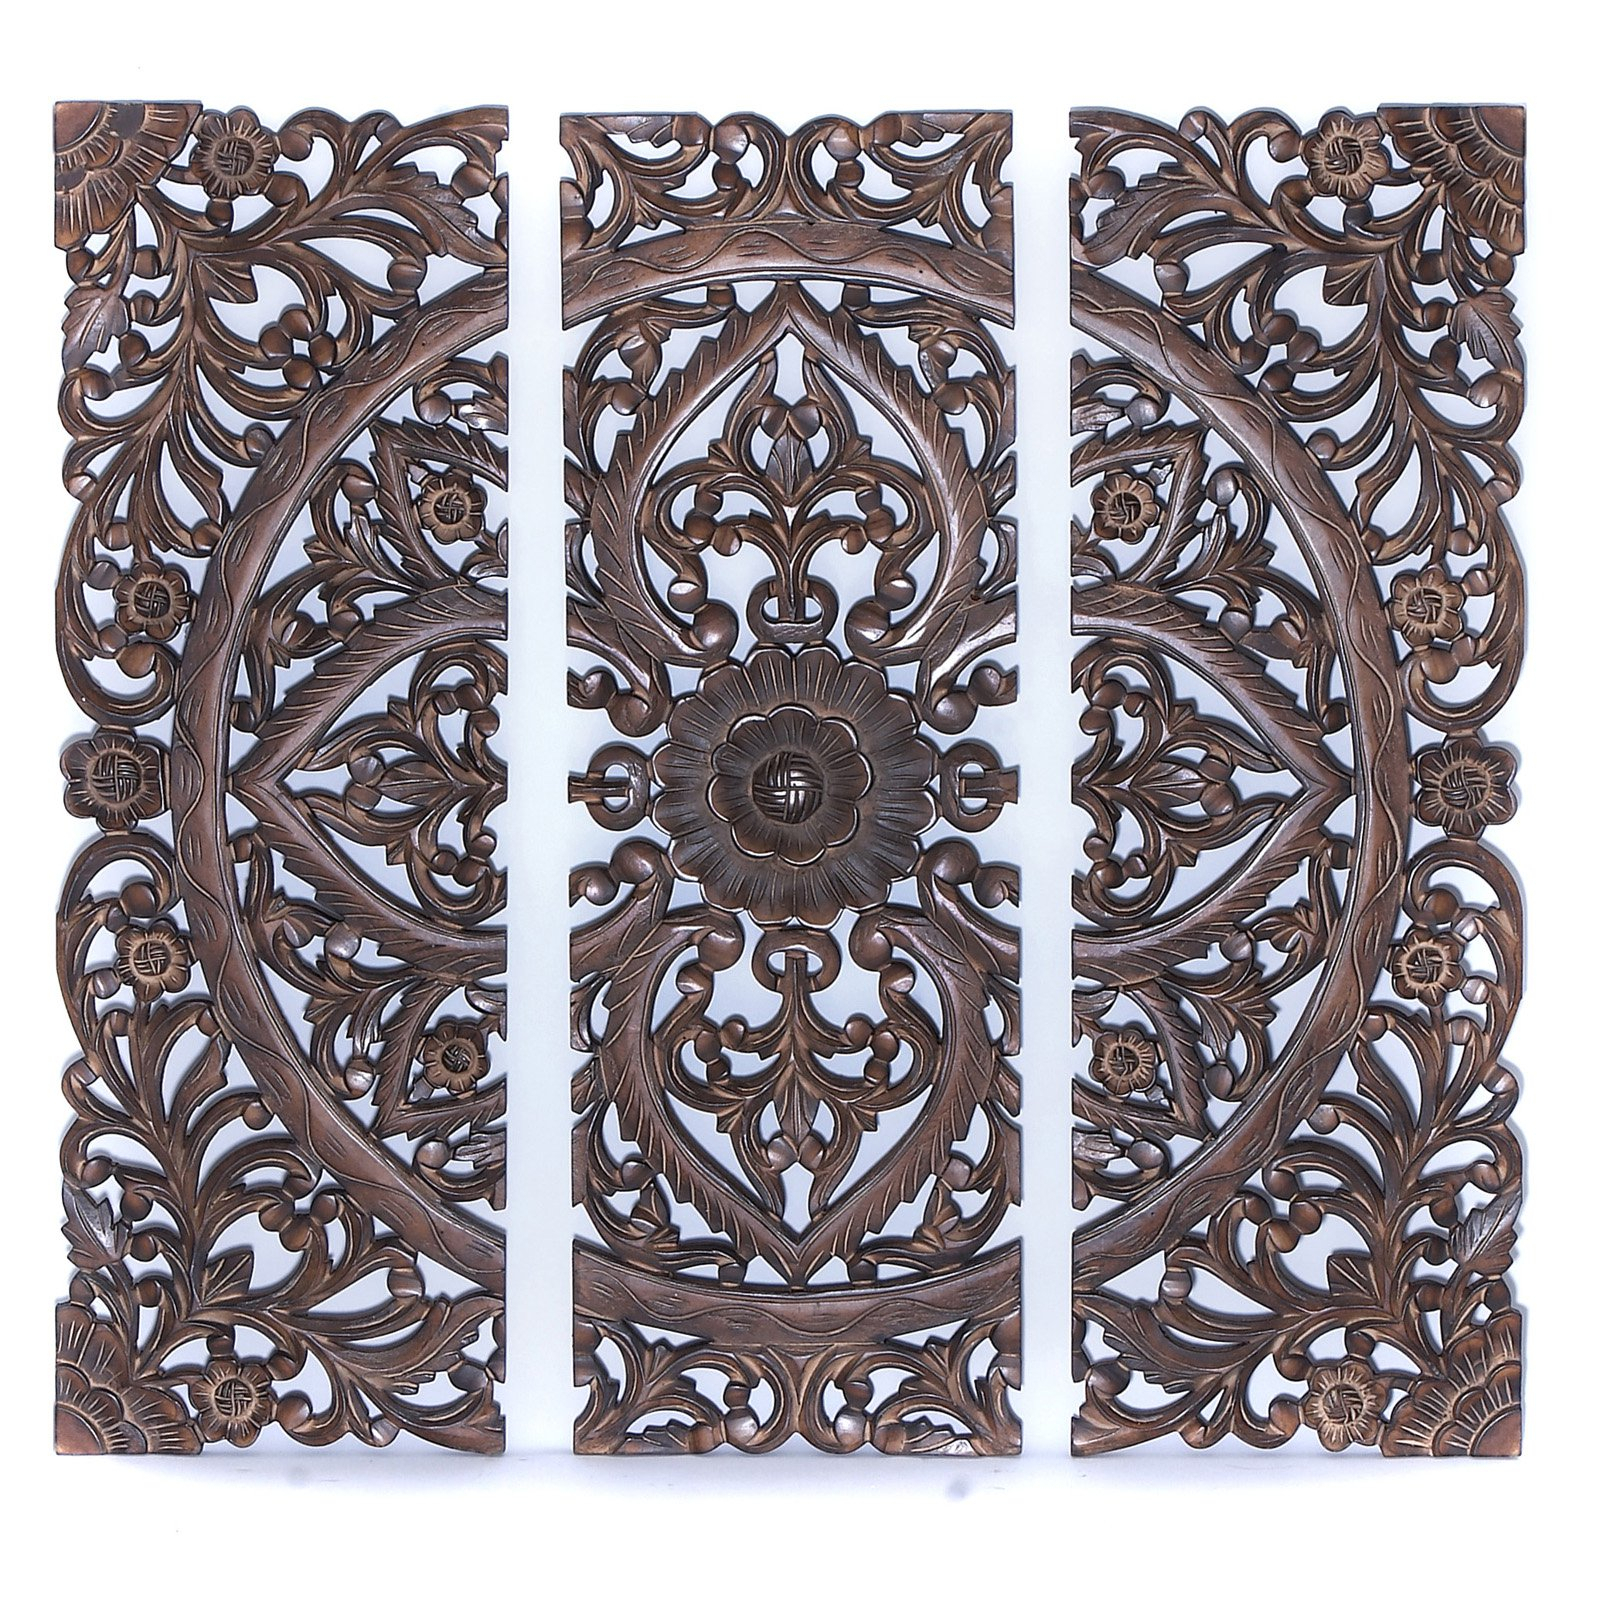 """Benzara 14404 36""""h Modern Wood Wall Panel With Dark Finish (set Of 3) Within Panel Wood Wall Decor Sets (set Of 2) (View 22 of 30)"""